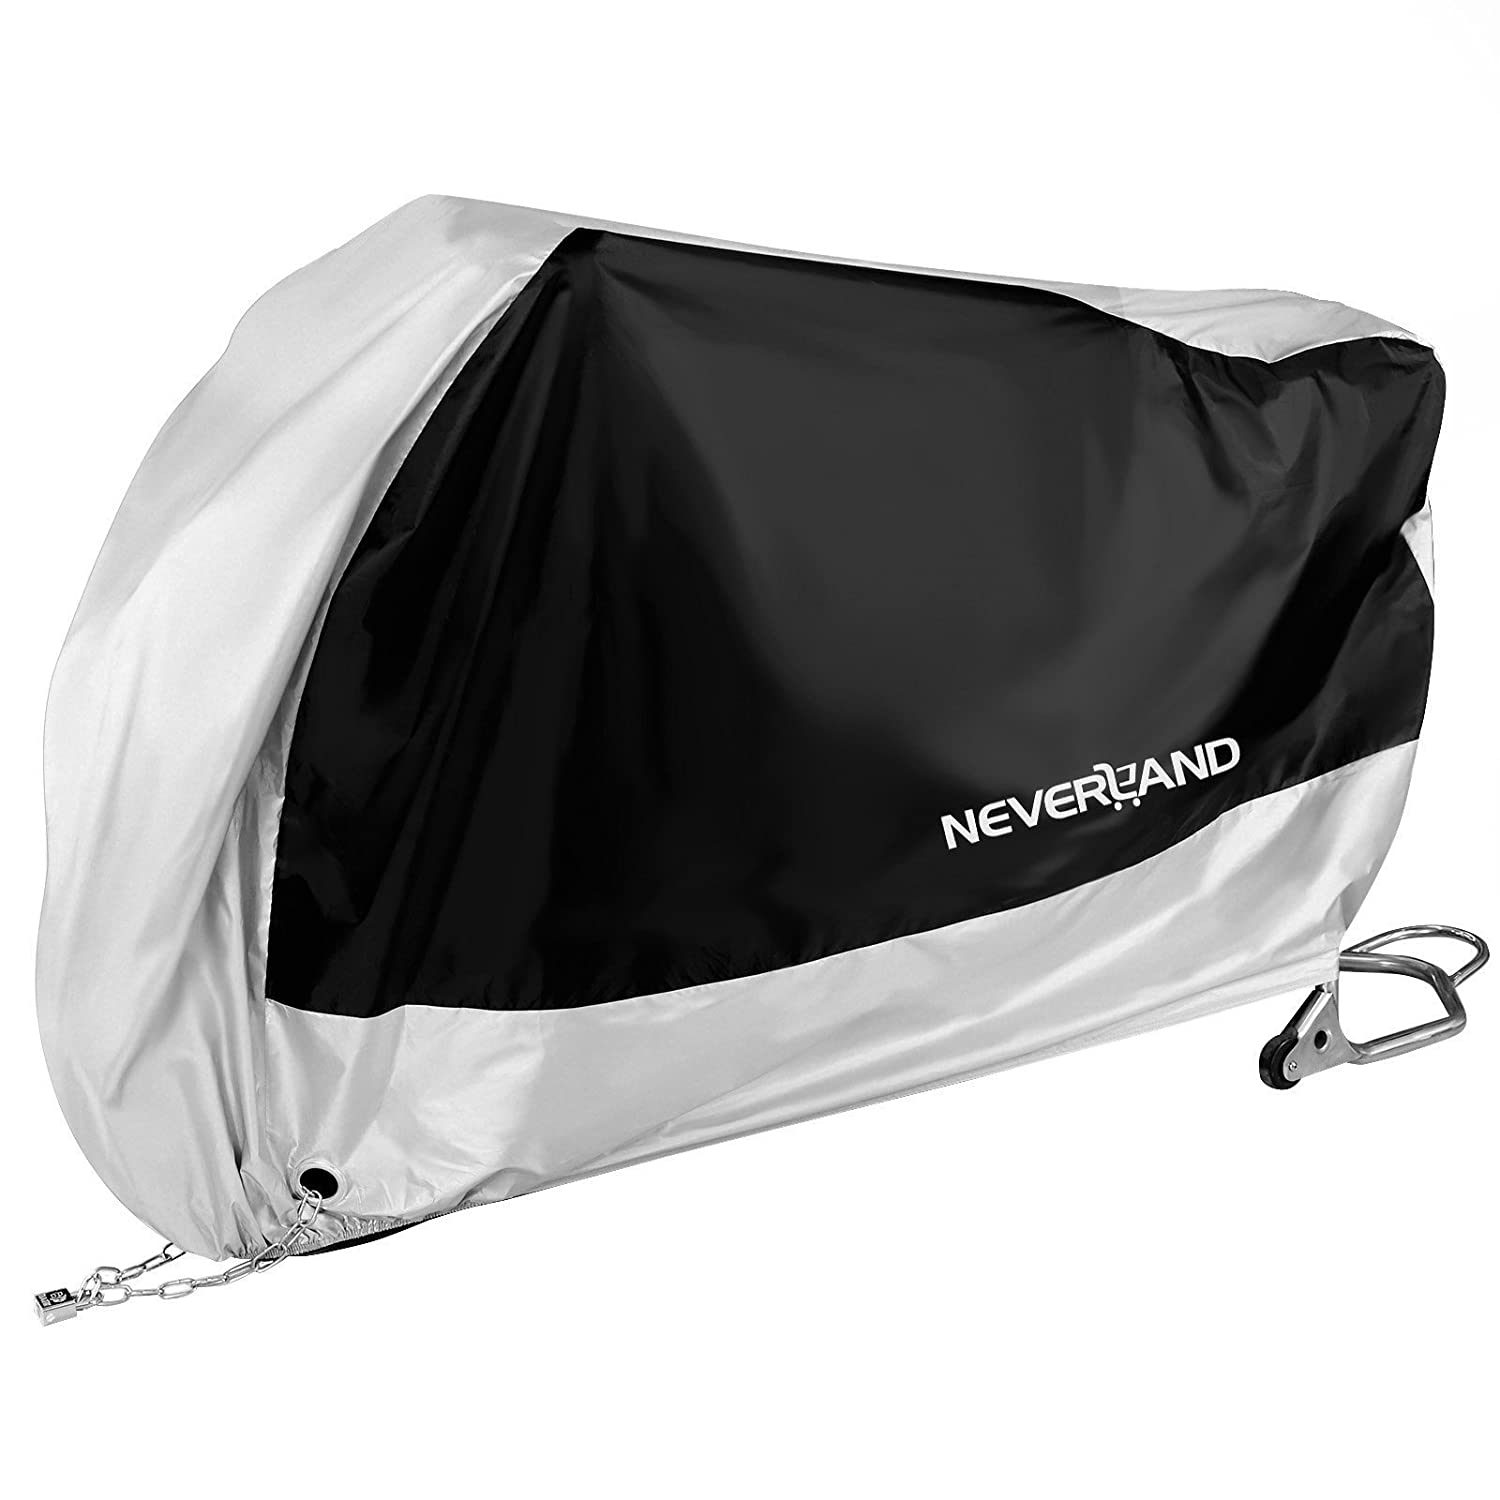 NEVERLAND Motorcycle Cover, Indoor Waterproof UV Dust Protector Cover, 2 Stainless Steel Lock-Holes Fit less than 71' Scooter, Small Displacement Off-Road 2 Stainless Steel Lock-Holes Fit less than 71 Scooter